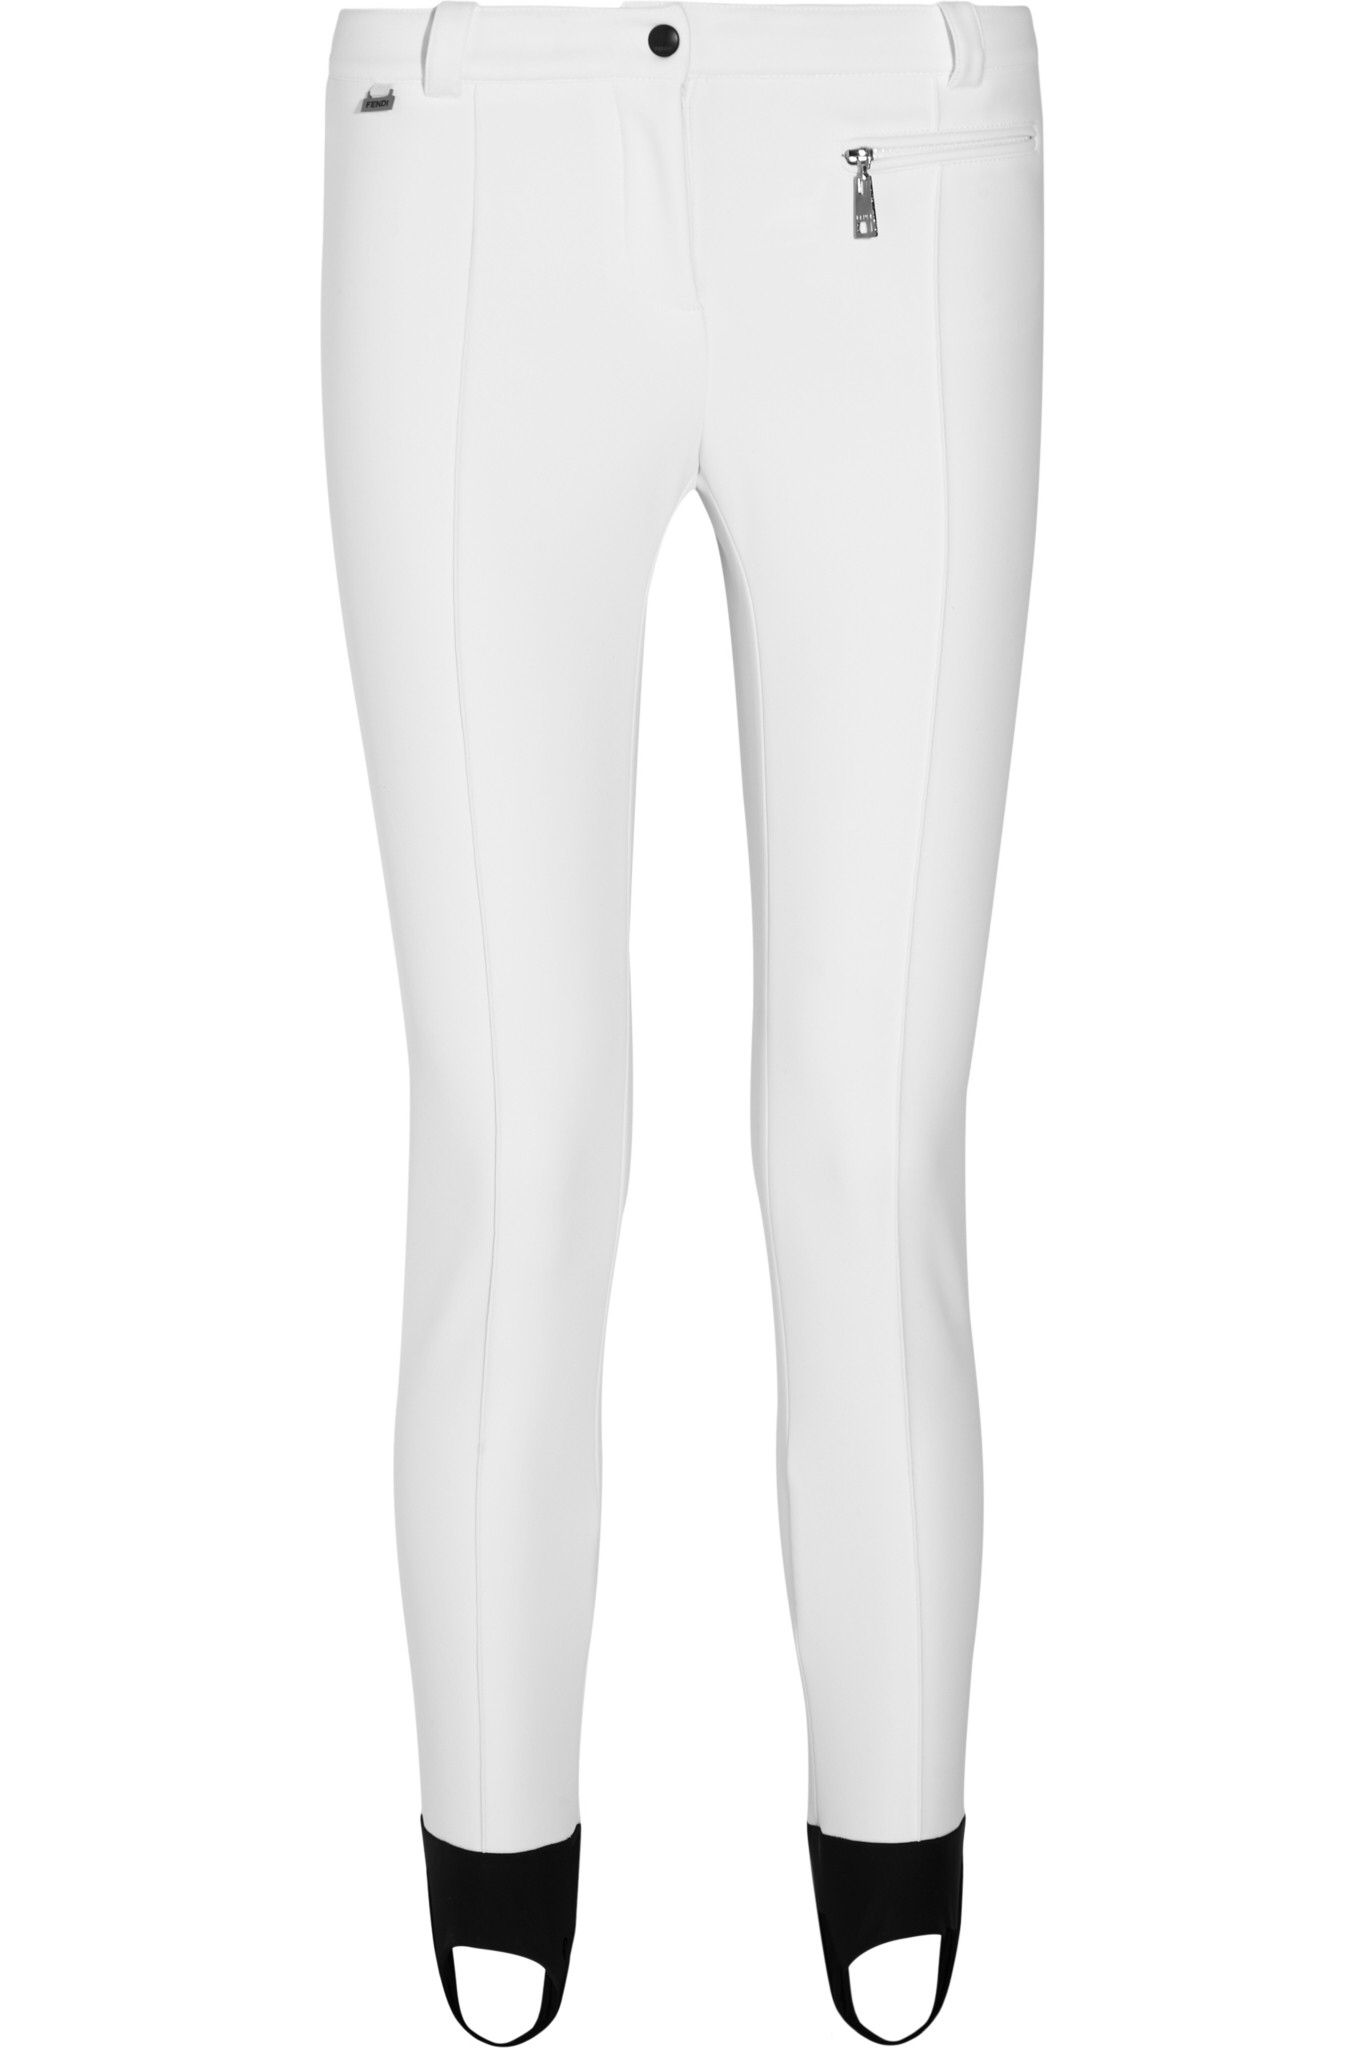 FENDI Stretch-jersey stirrup leggings £549 http://www.net-a-porter.com/products/474711